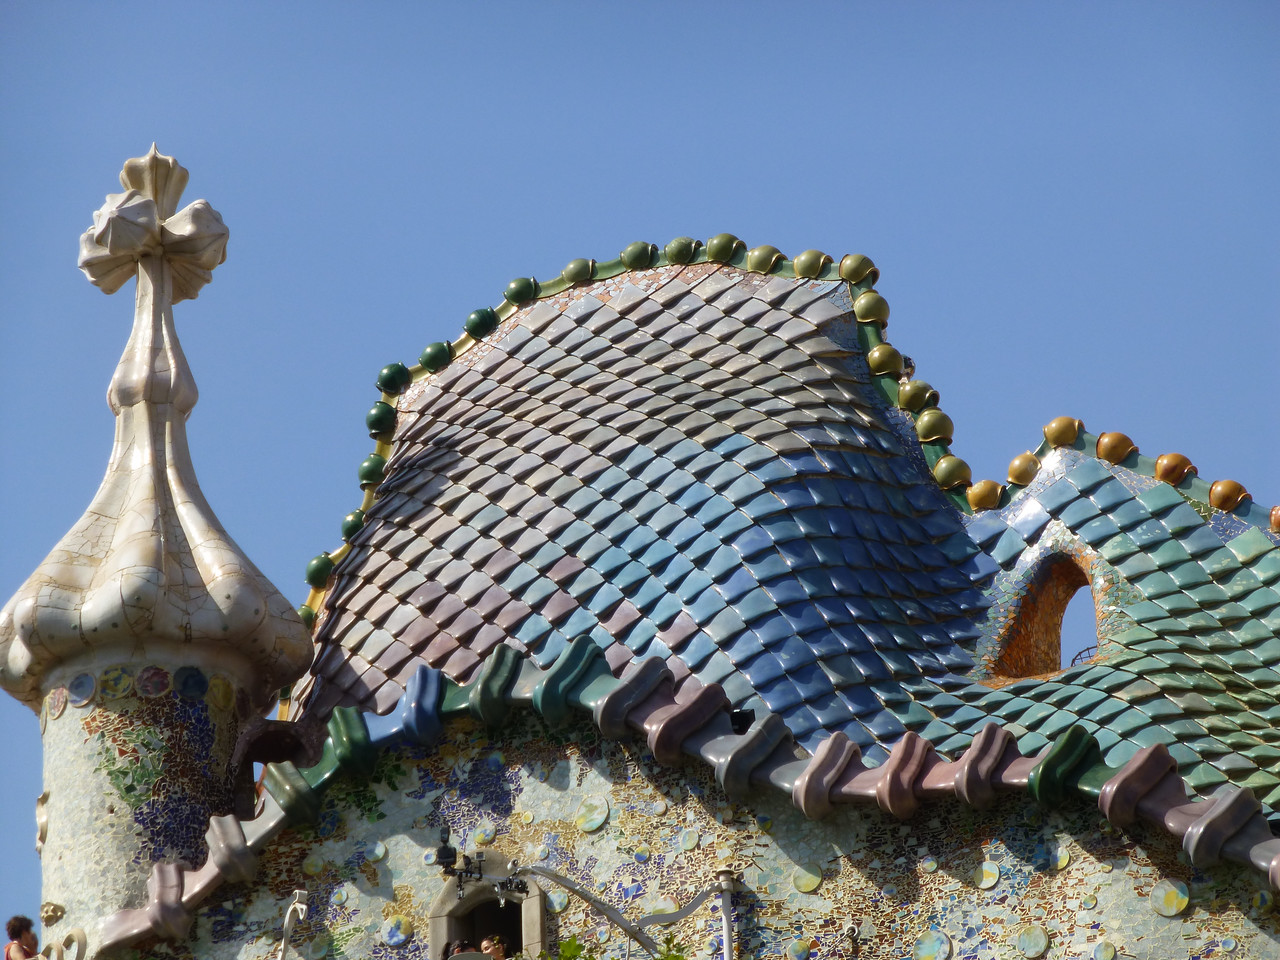 Roof of famous Gaudi Casa Battló on Passeig de Gracia